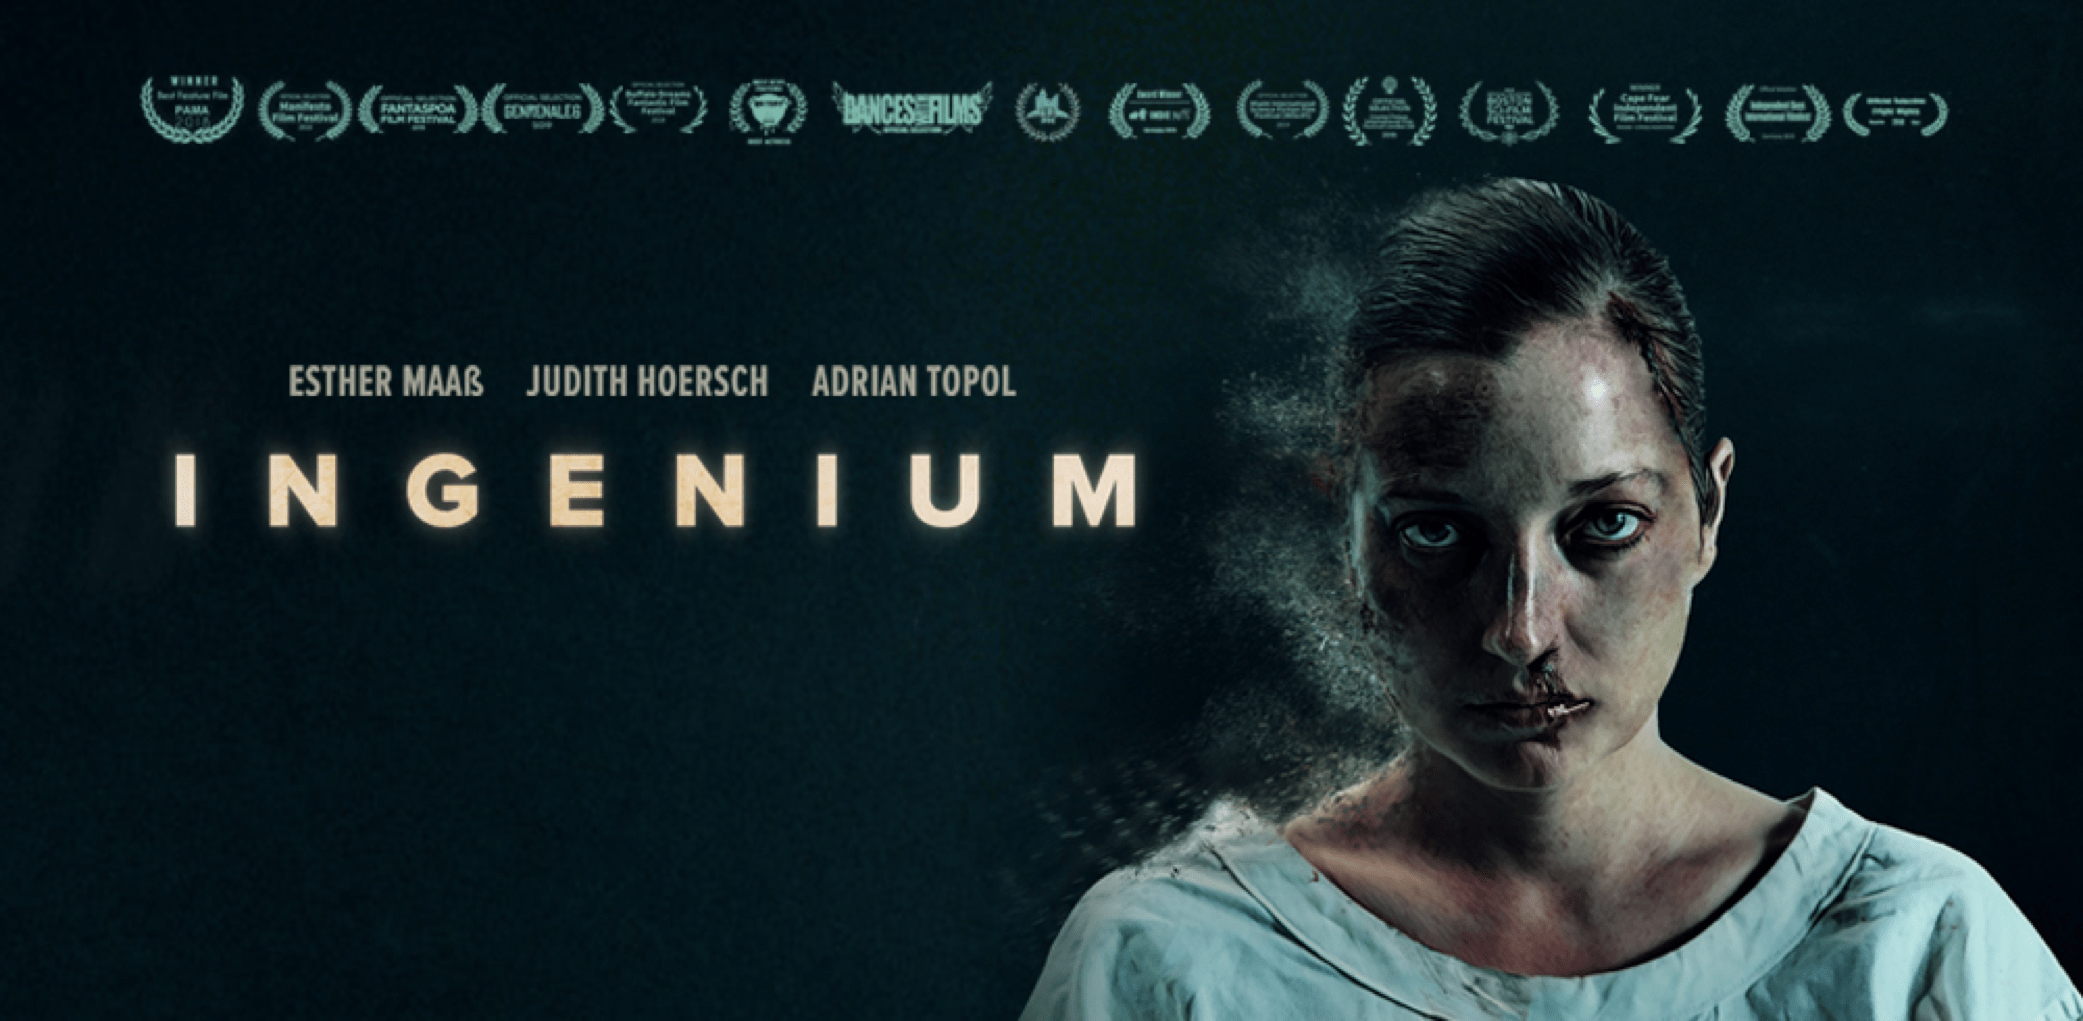 Level 33 Entertainment Presents INGENIUM from Award Winning Producer Eric Sonnenberg | VOD ON DEMAND 7/7/2020 2